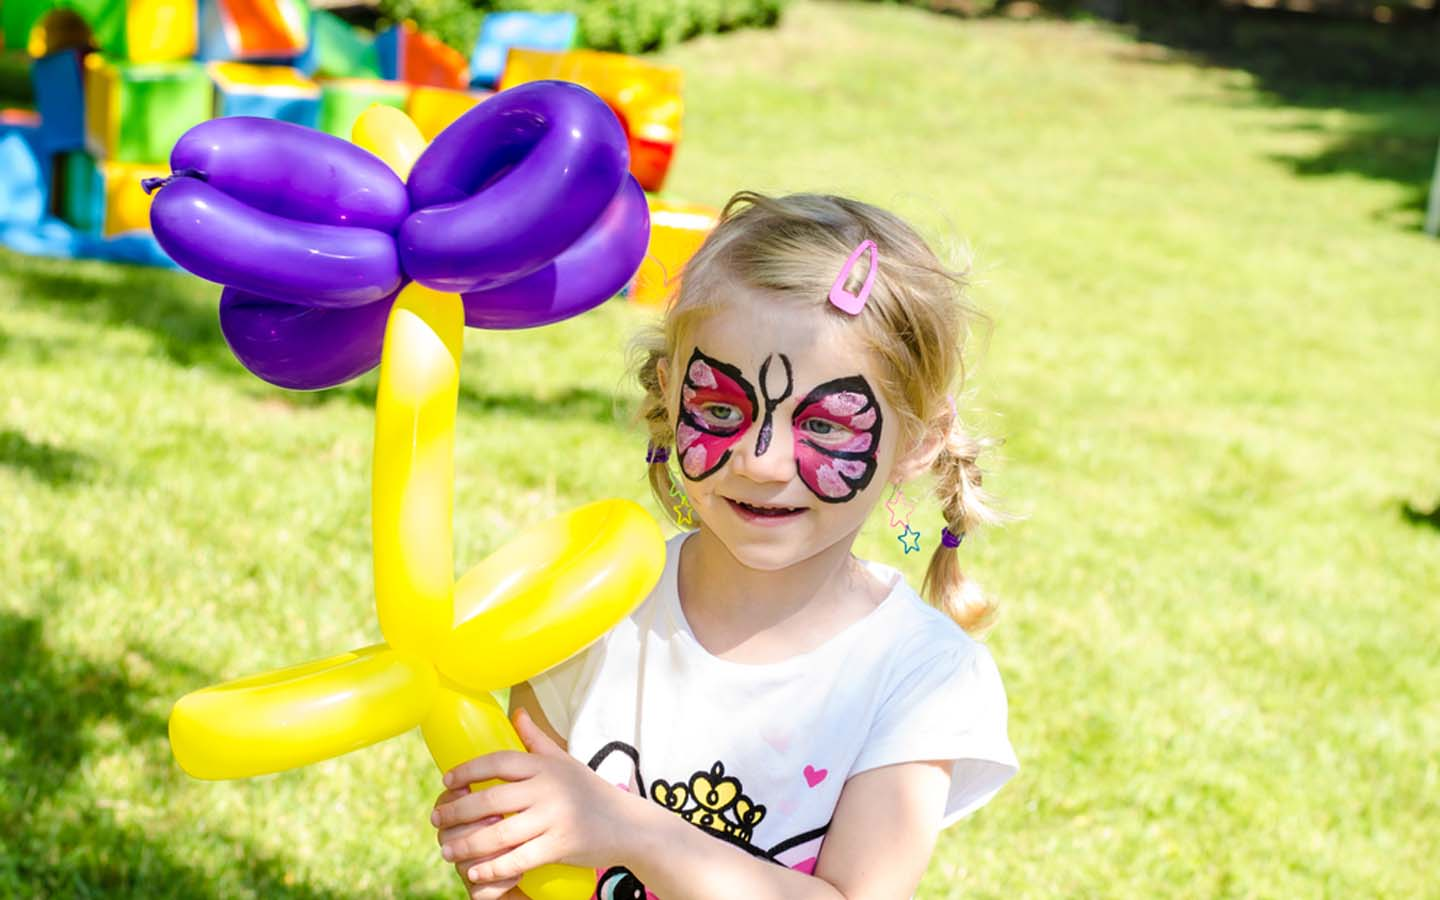 Girl with face paint holding balloon